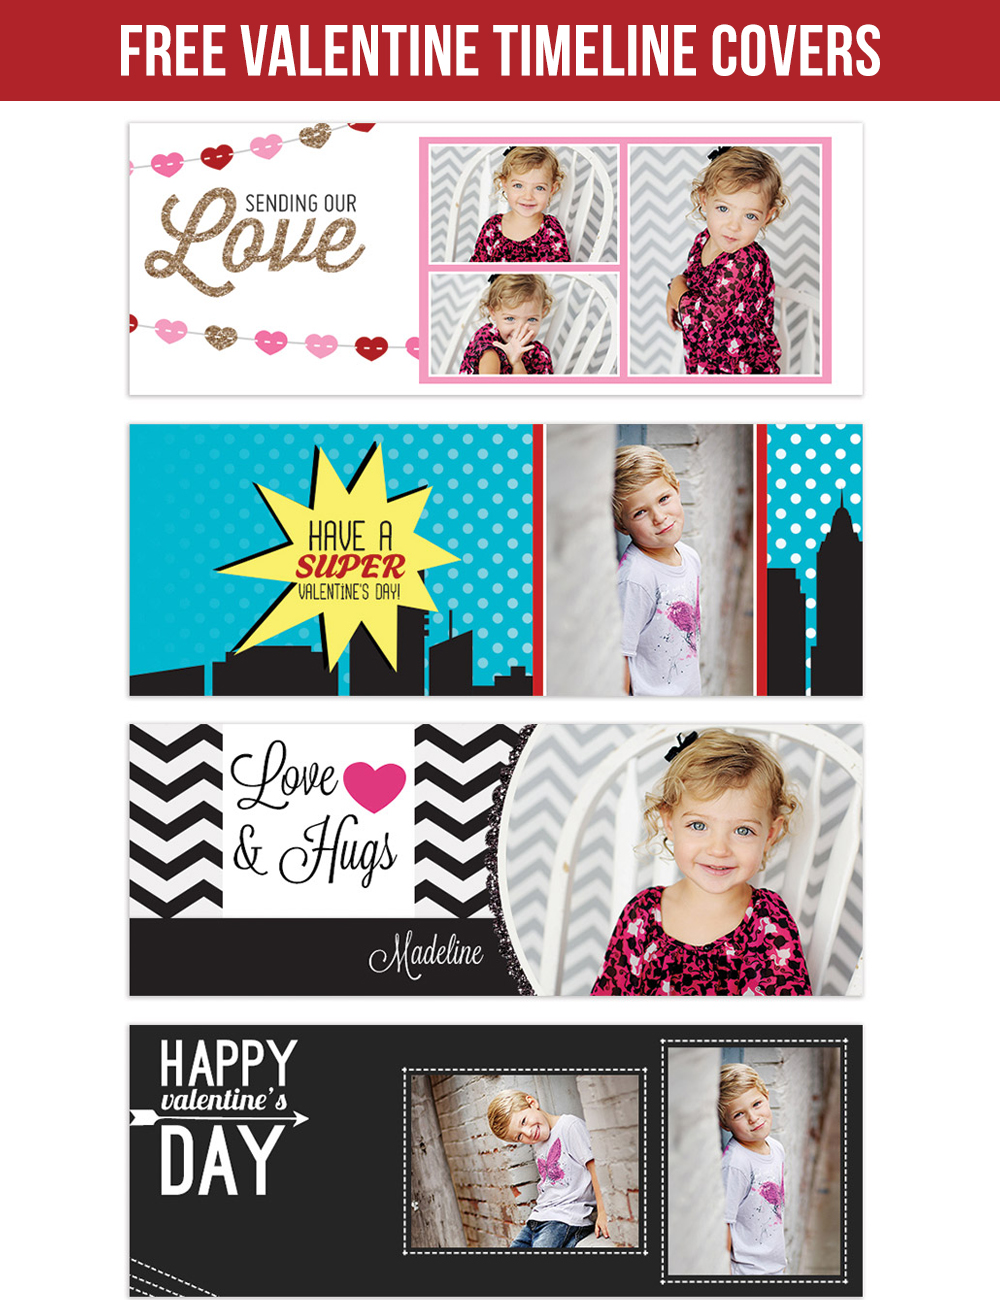 FREE Valentine timeline covers, so CUTE!!!